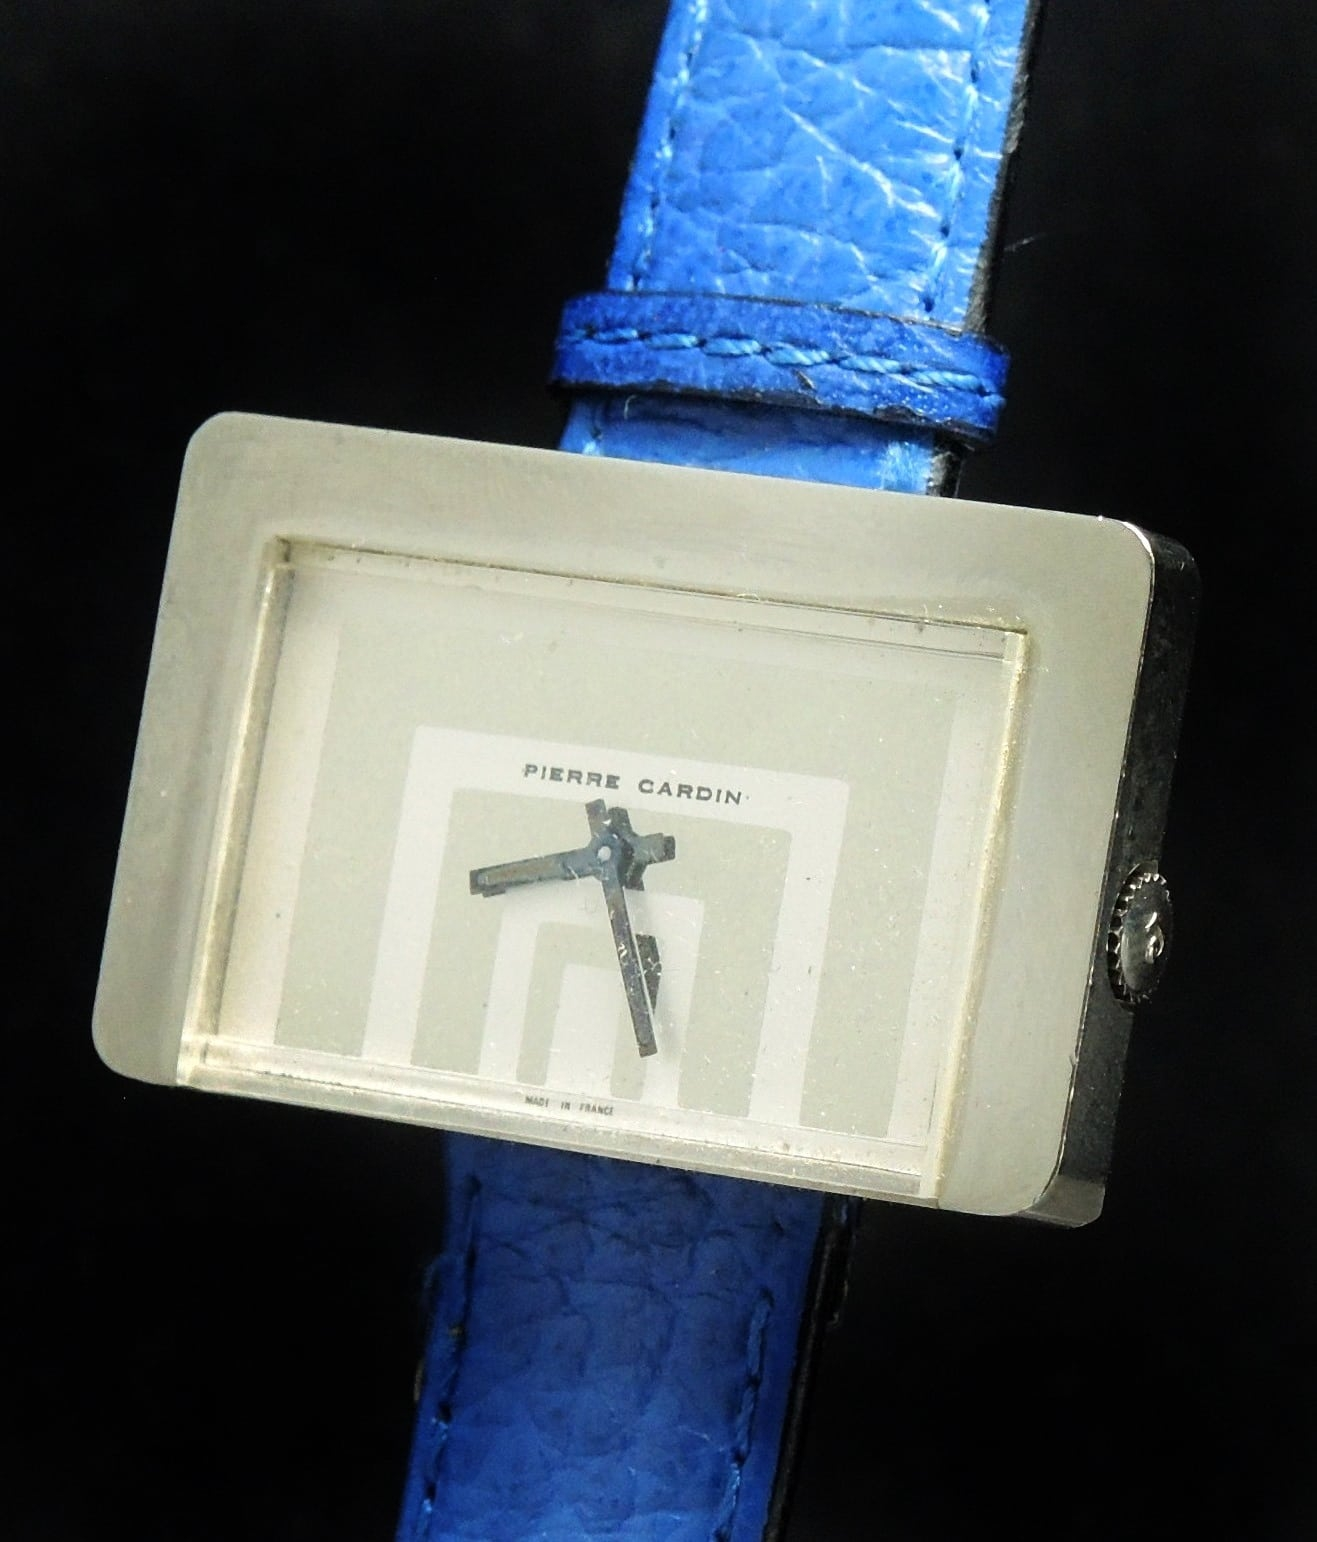 Jaeger lecoultre for pierre cardin watch of the 70ties rare jaeger lecoultre for pierre cardin watch of the 70ties biocorpaavc Choice Image